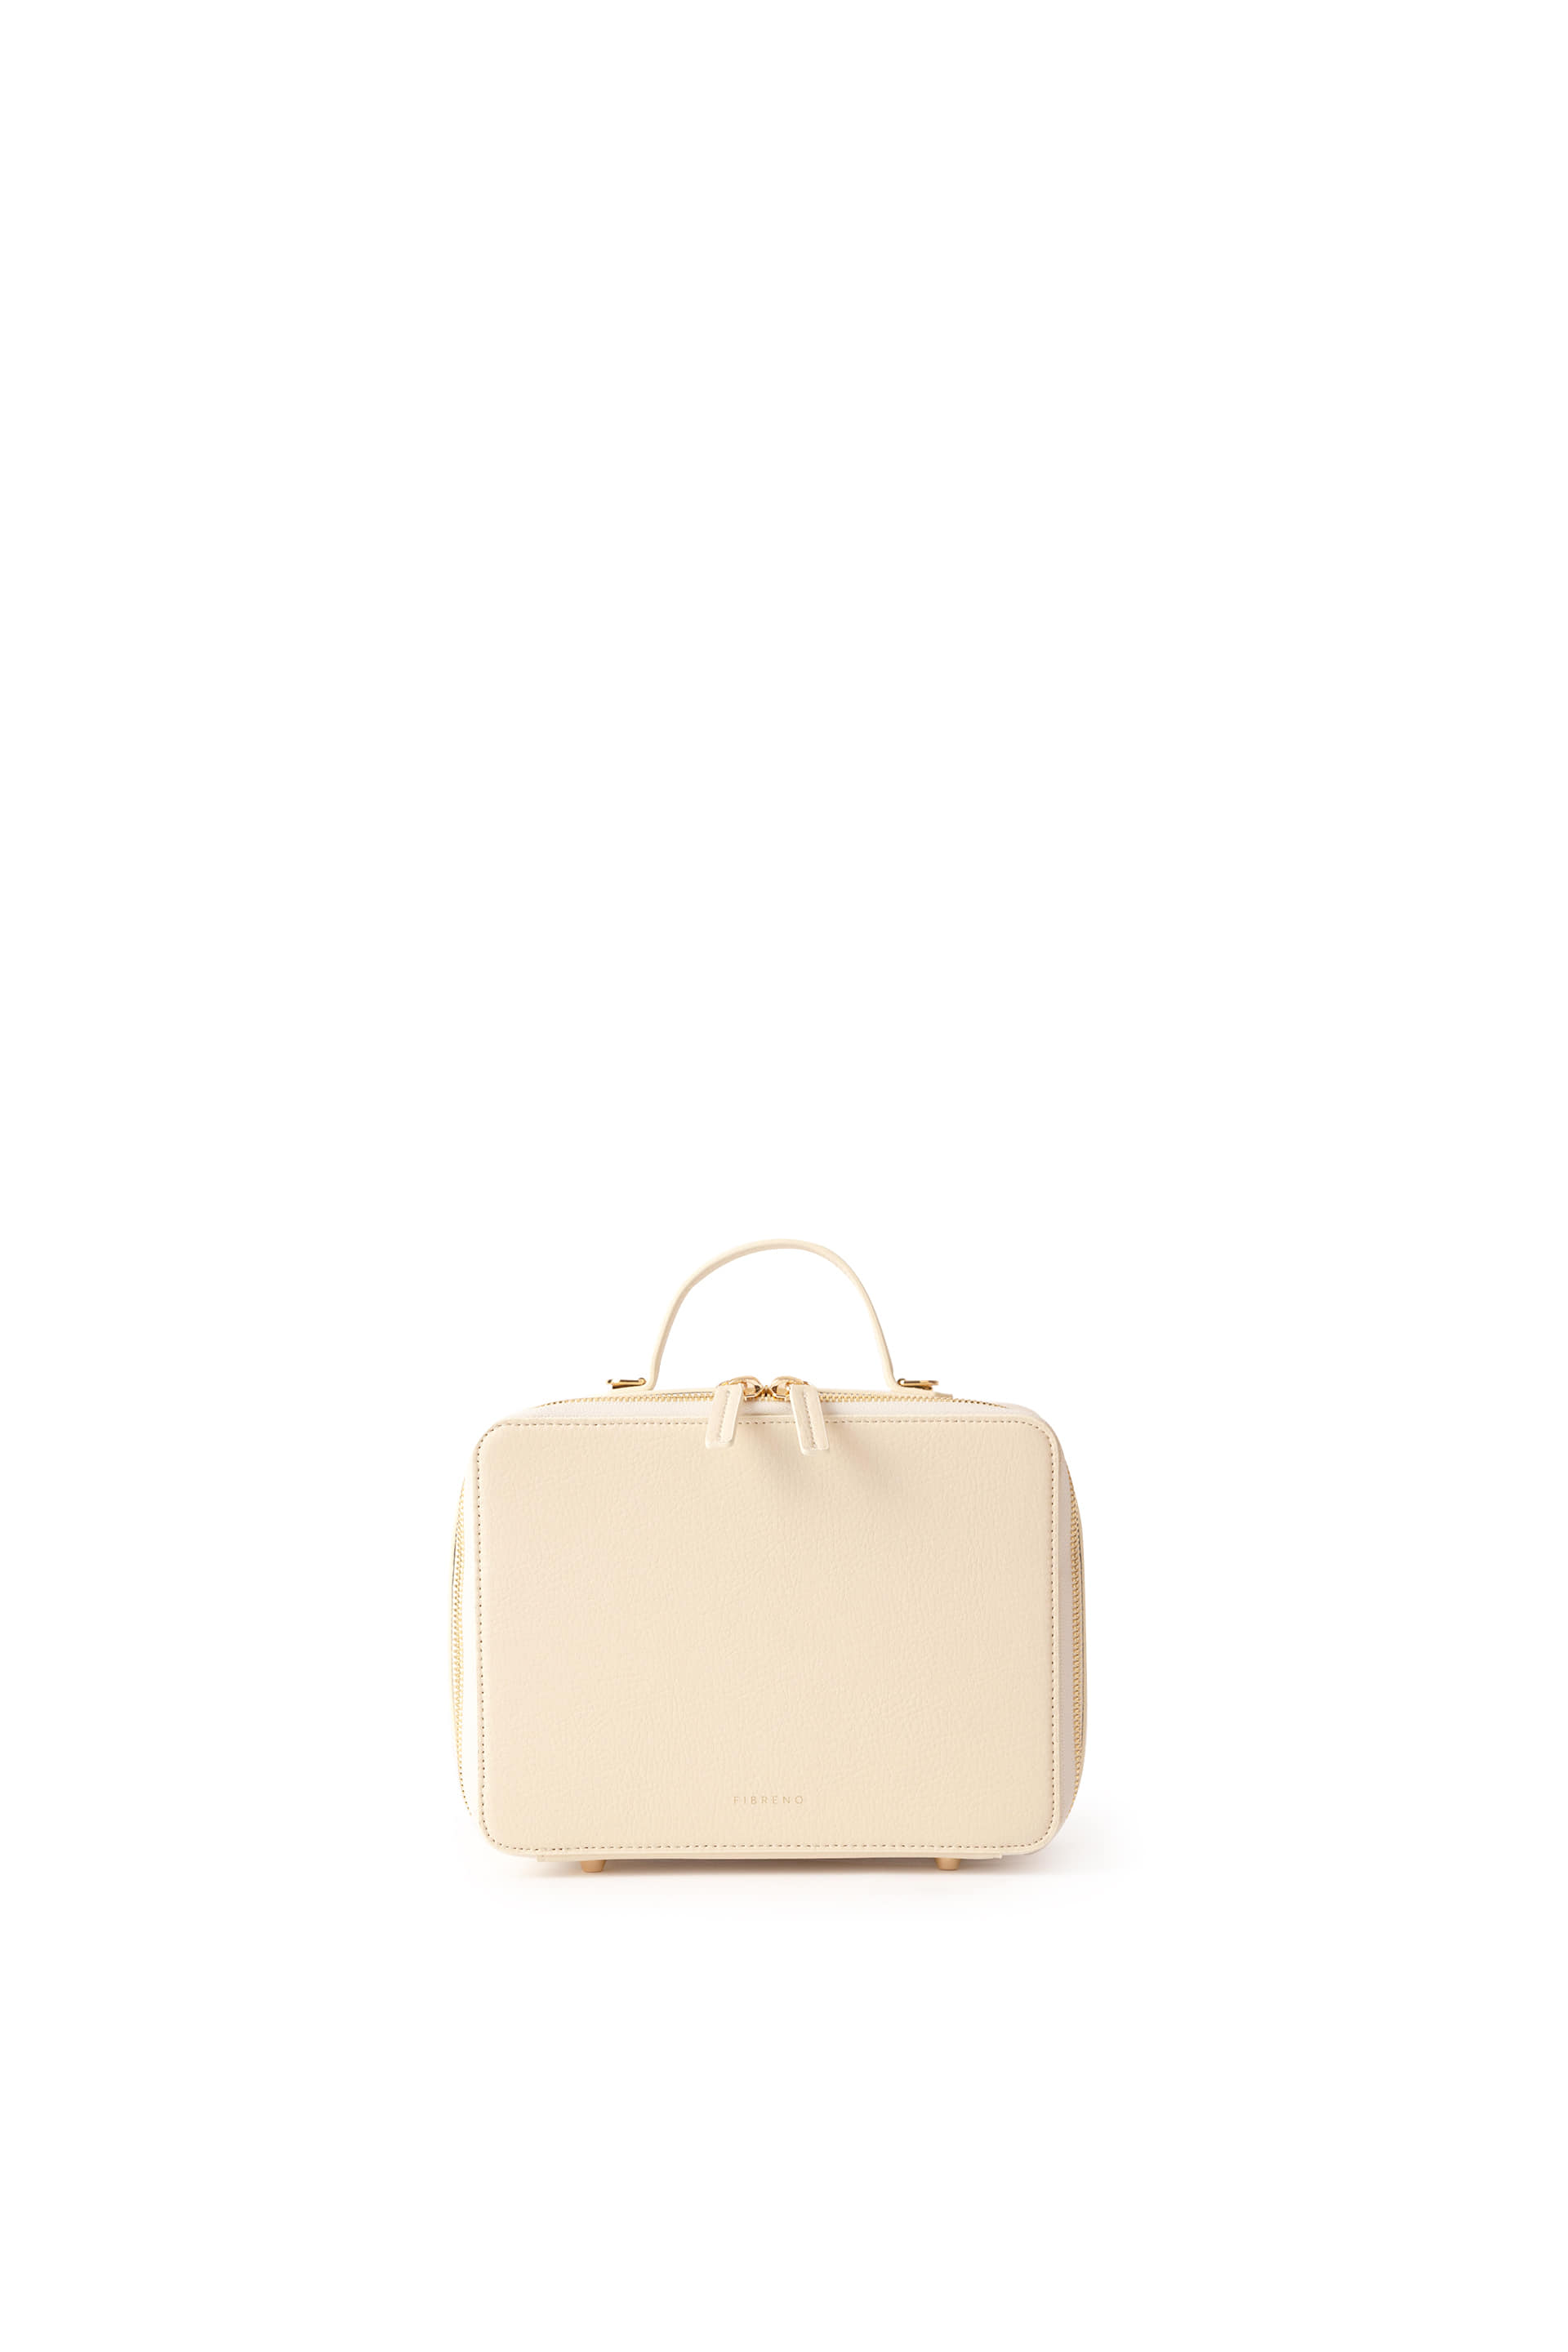 BB SQUARE BAG 25 Ivory